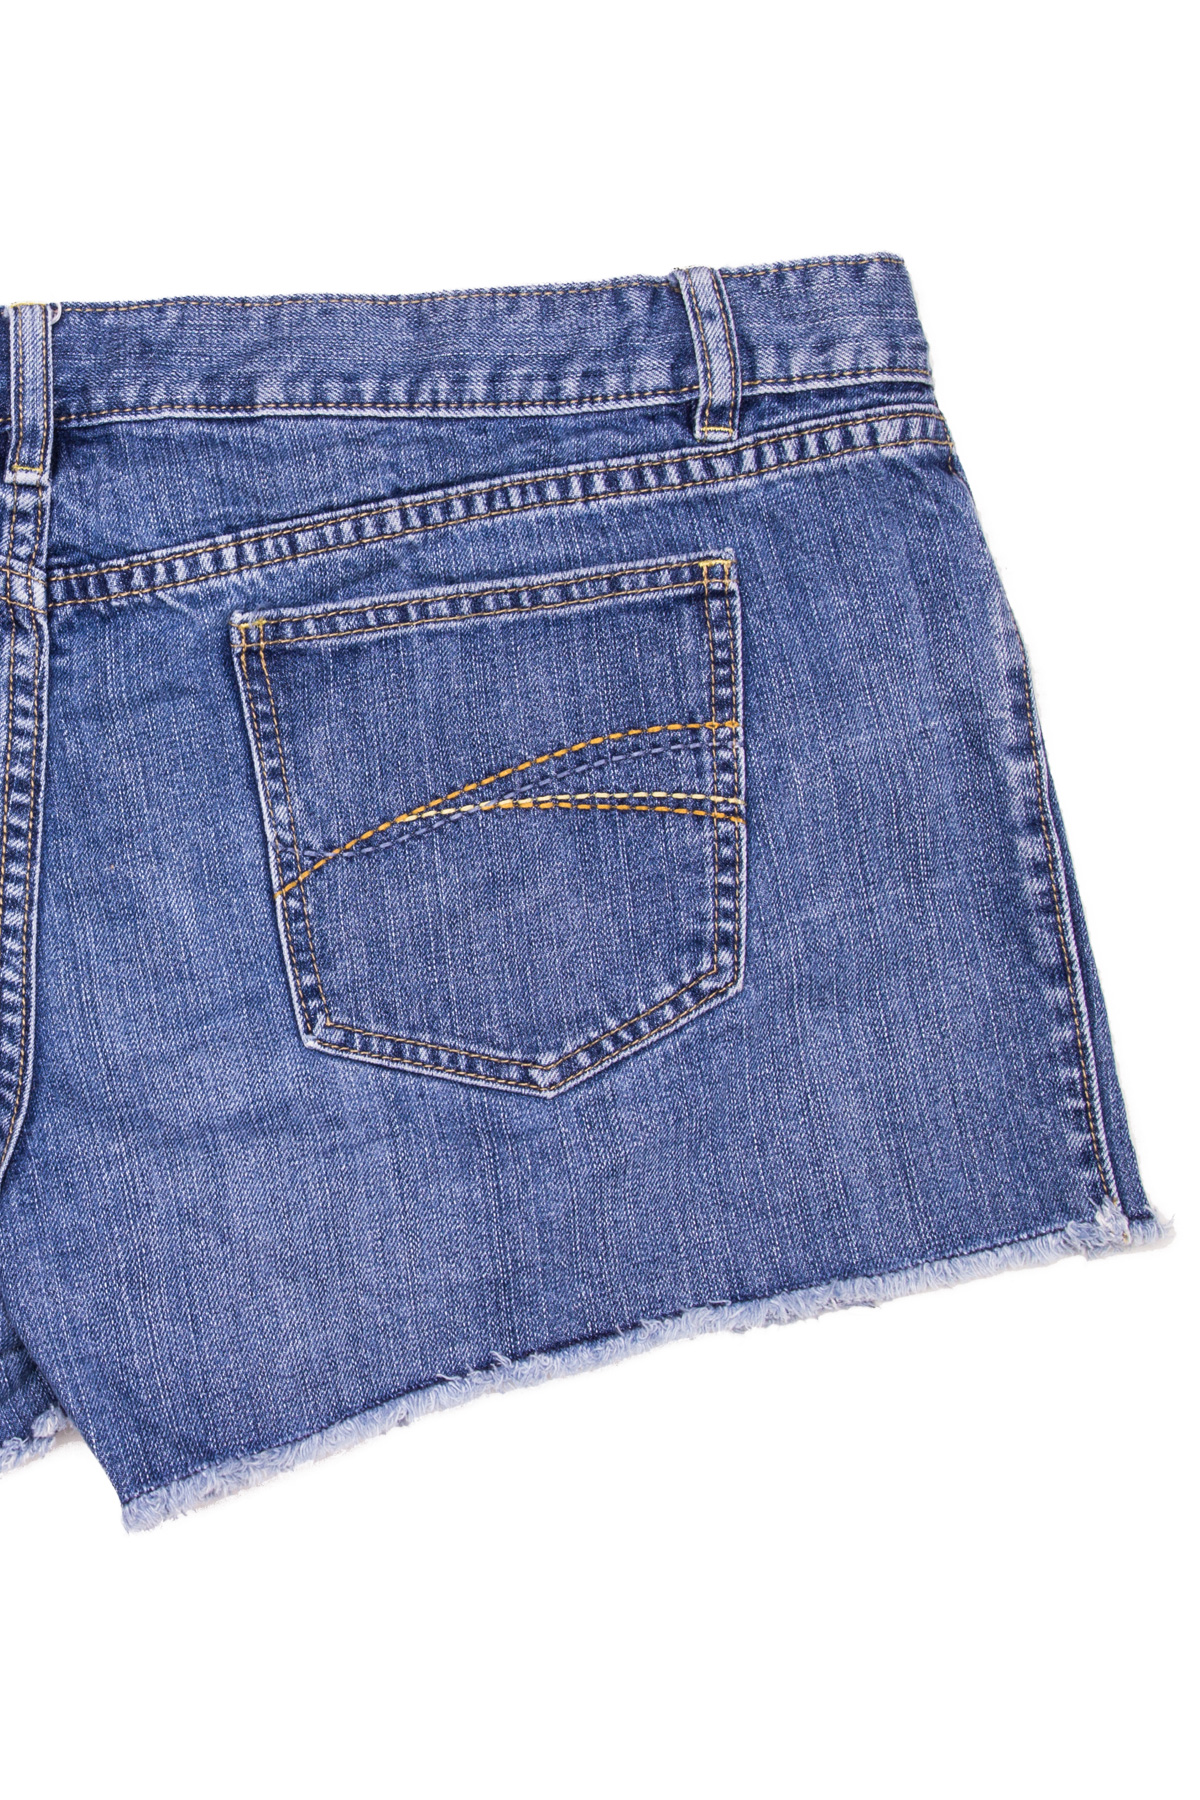 Cut Off Denim Shorts 45